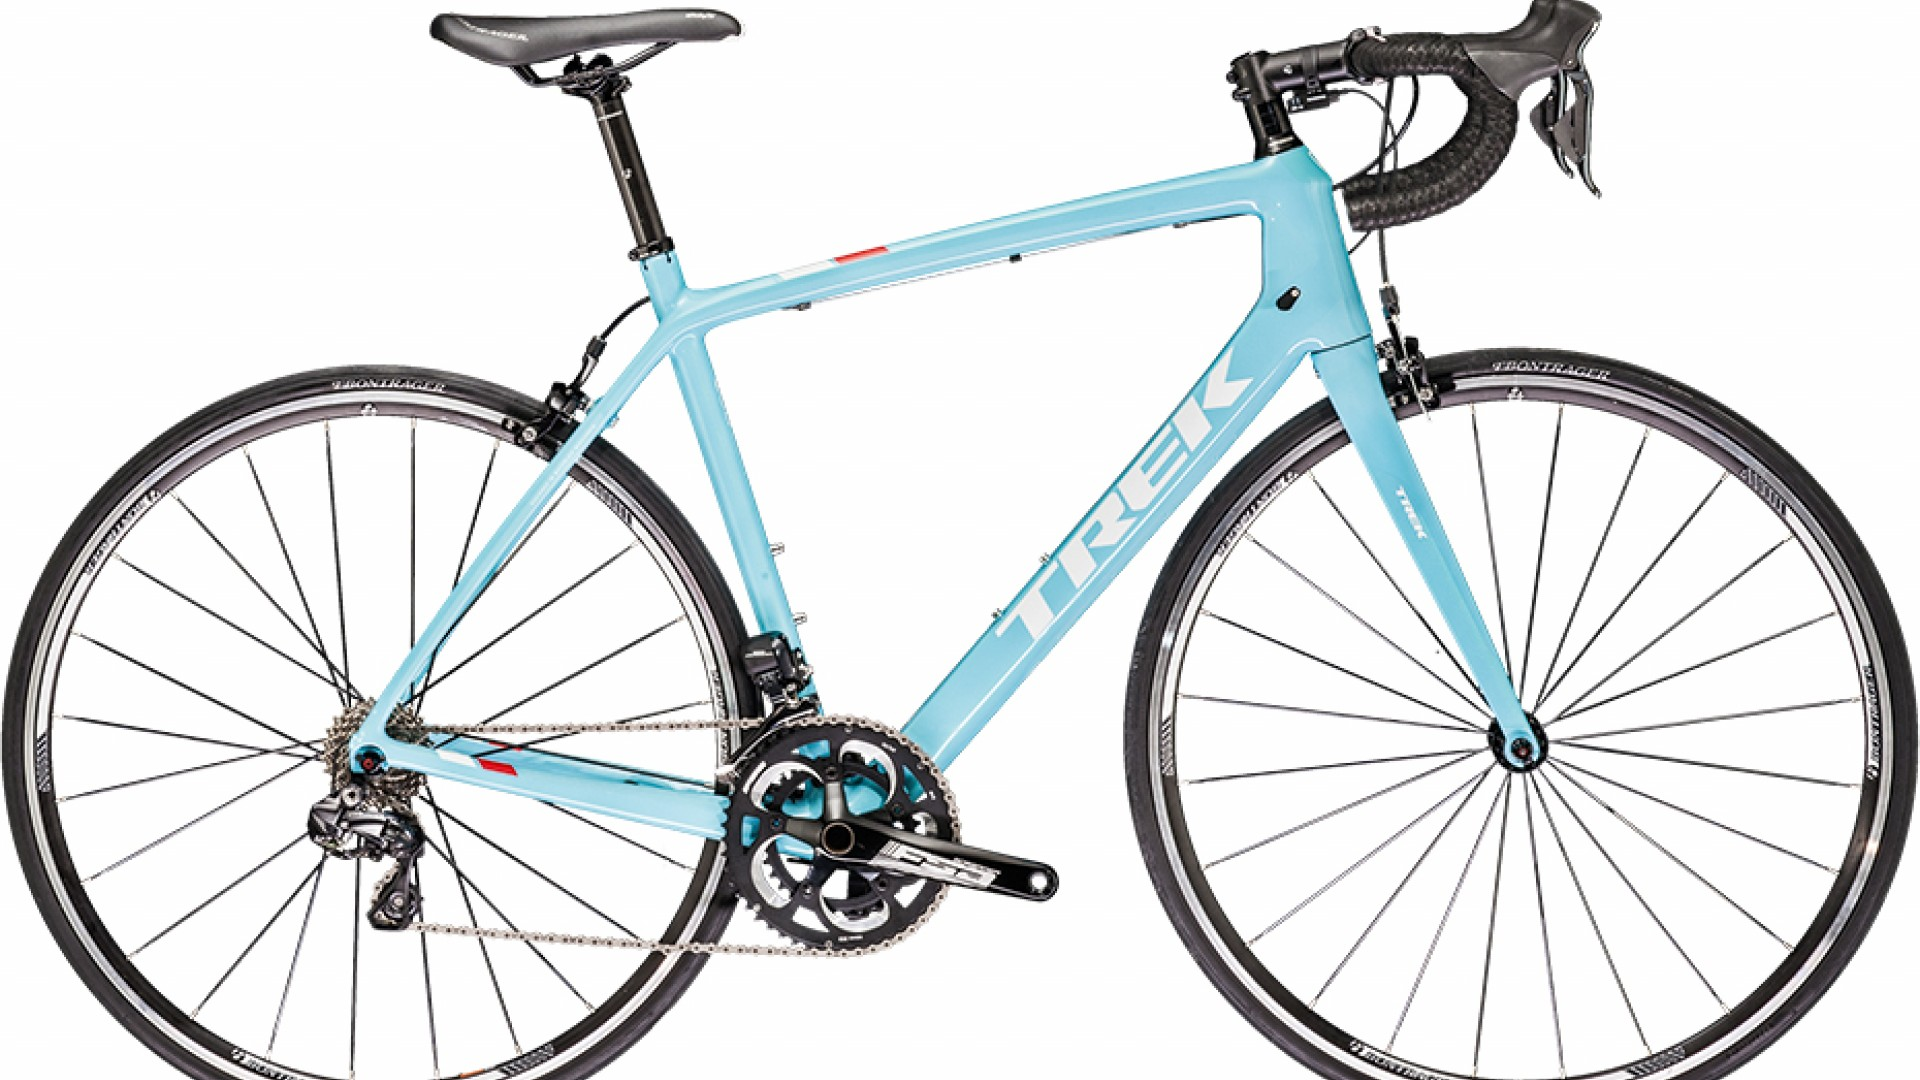 Trek Madone 4.9, £2,600  Named after a legendary climb, Trek's Madone is an icon in its own right. The 4.9 has electronic shifting and all-day comfort.